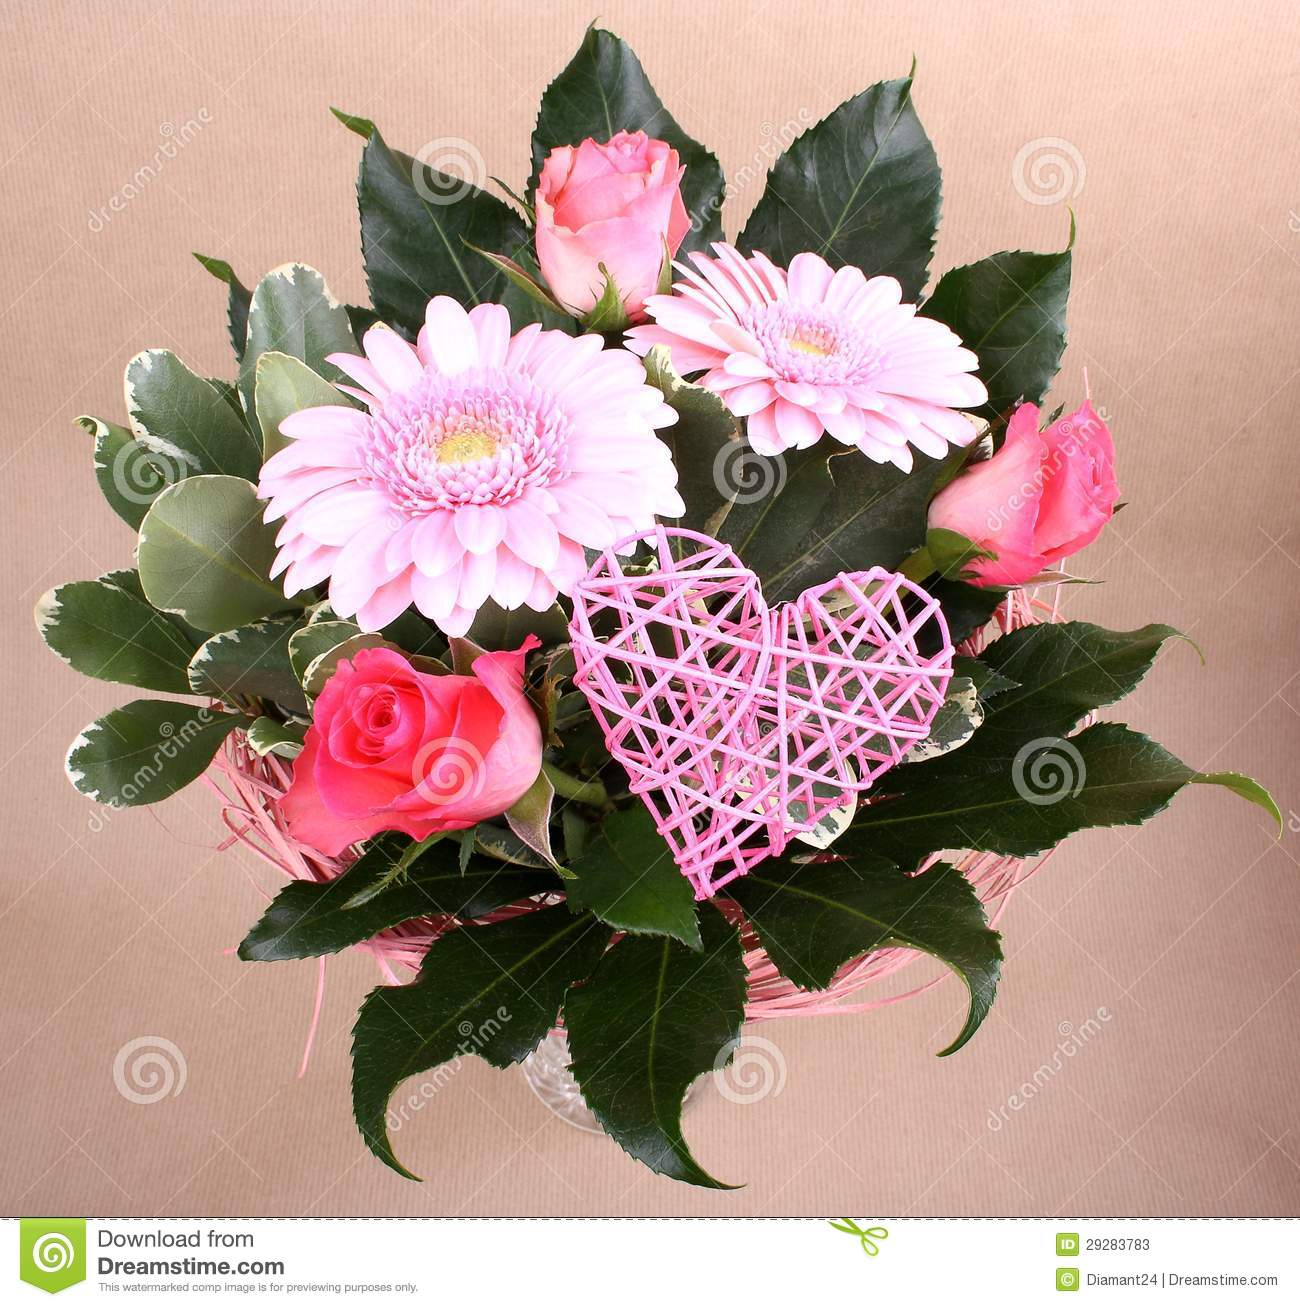 Beautiful Flower Bouquet With Heart And Roses Stock Image - Image of ...